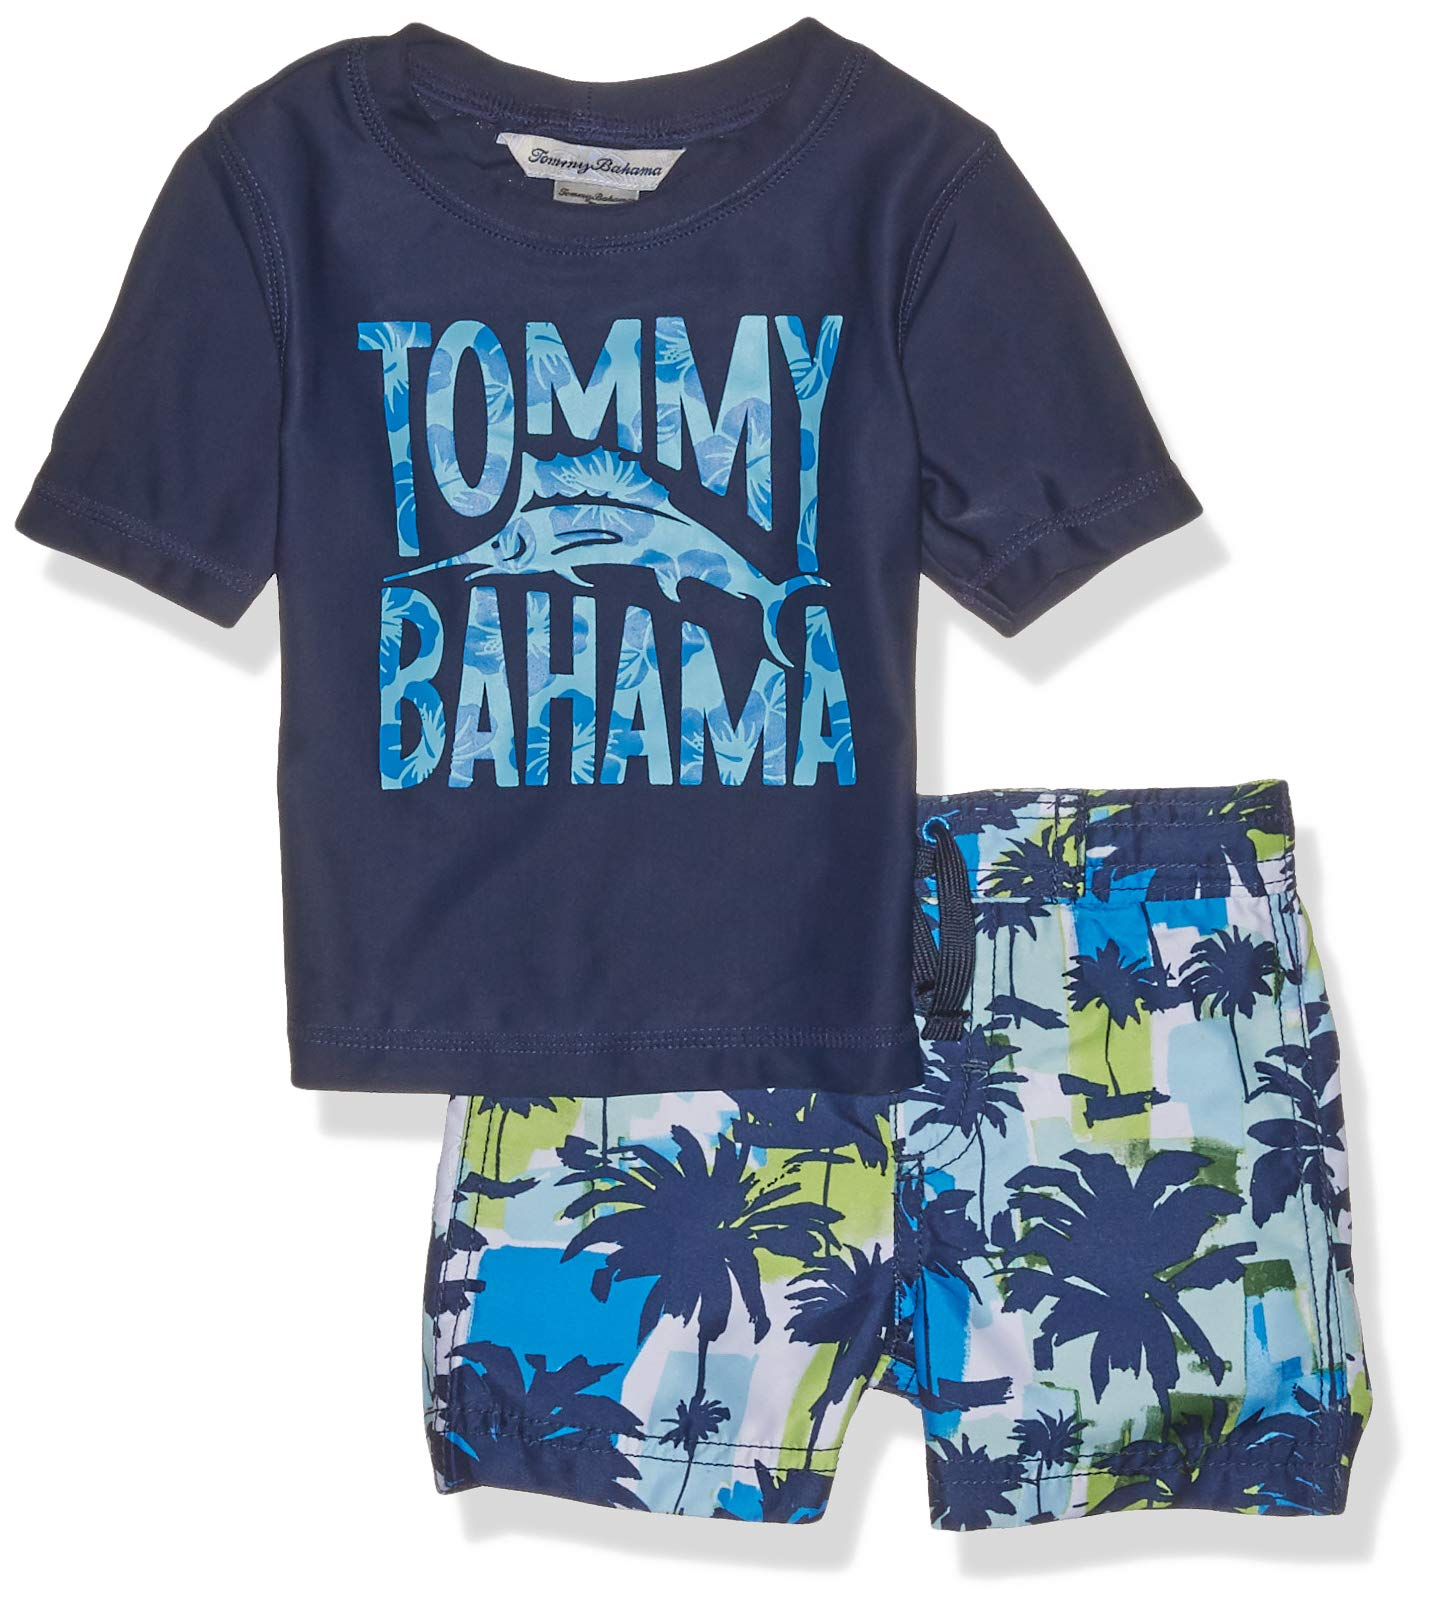 Tommy Bahama Baby Boys Rashguard and Trunks Swimsuit Set, Blue Lime Palm, 12 Months by Tommy Bahama